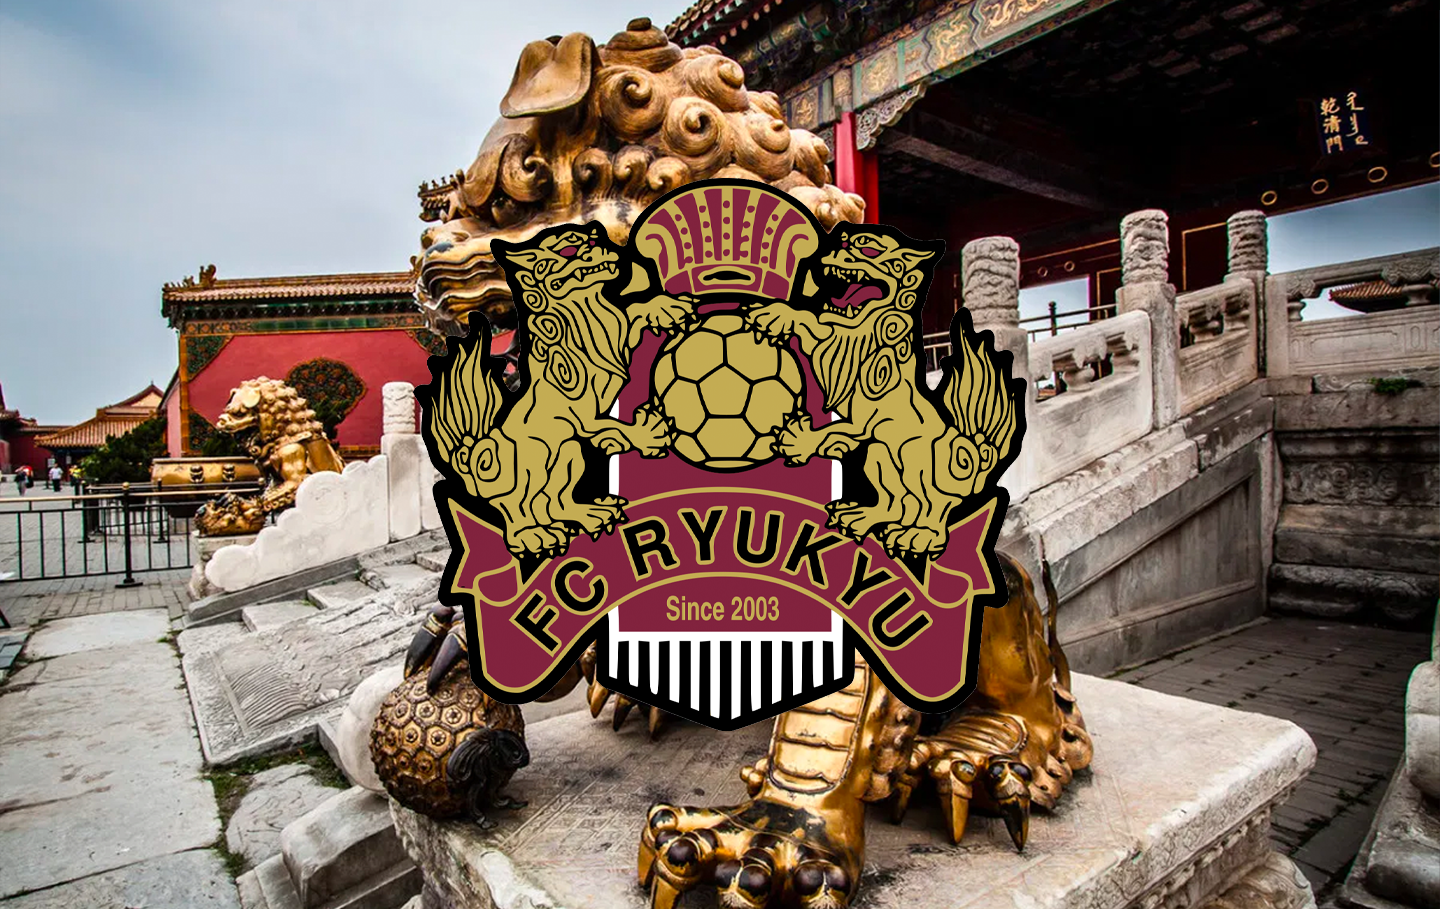 Badge of the Week: FC Ryukyu